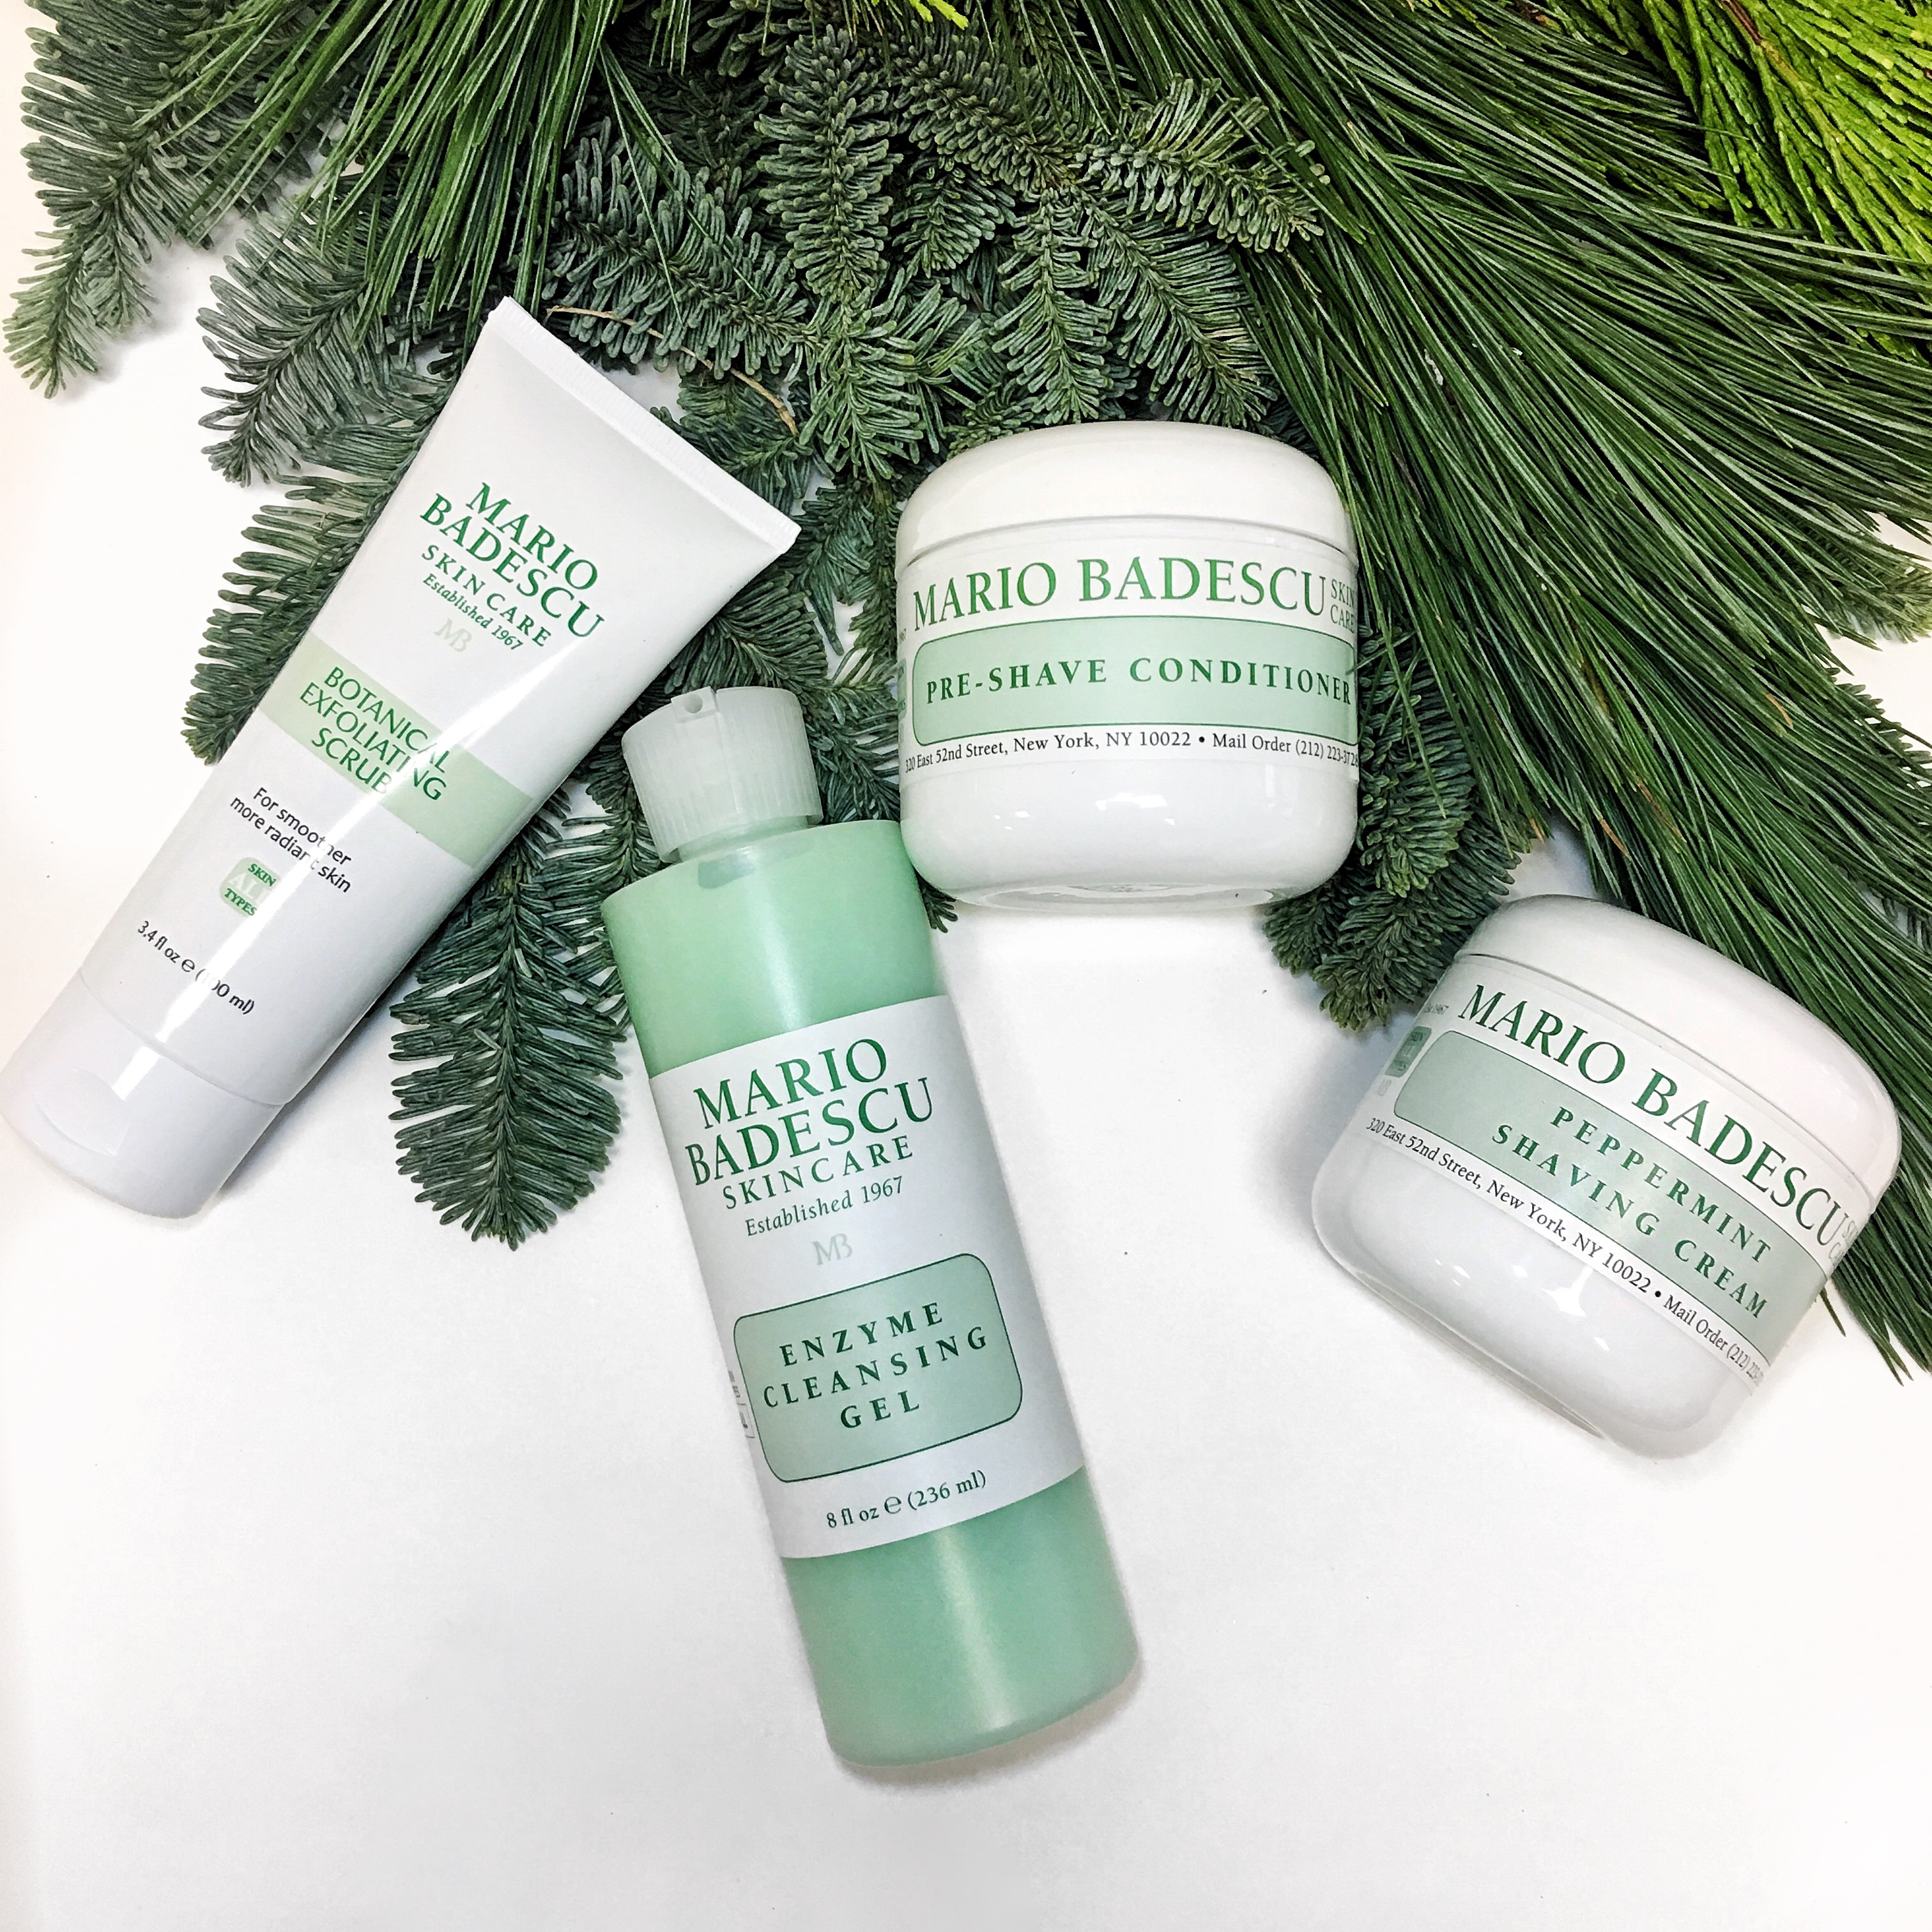 Mario Badescu Men's Gift Idea